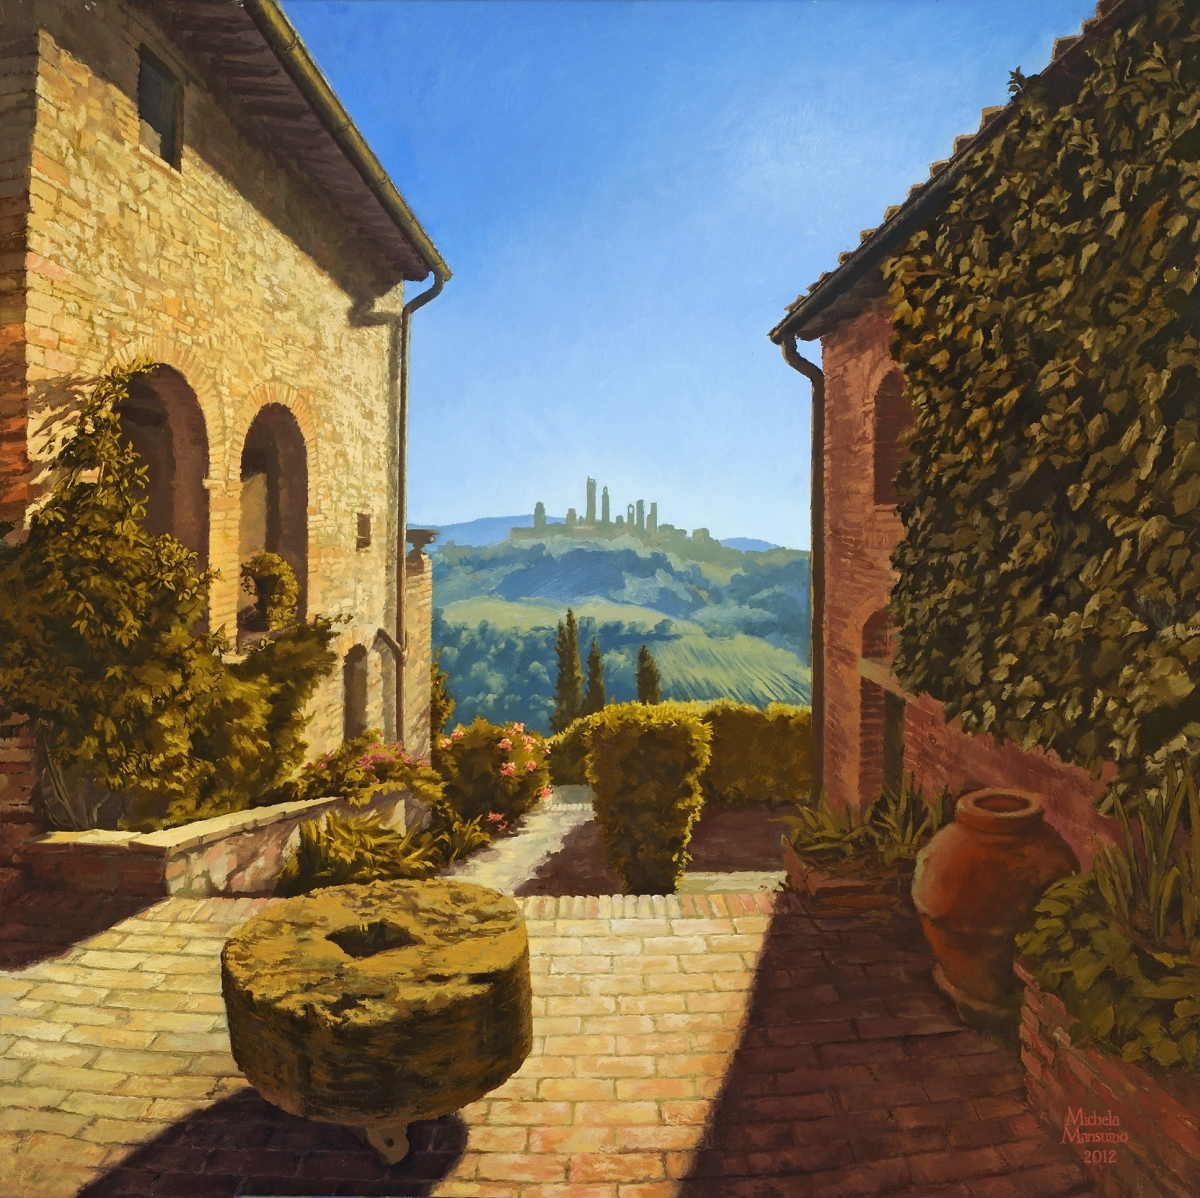 Let Us Contemplate Montagnana's View Of San Gimignano and The Message It Conveys (large view)